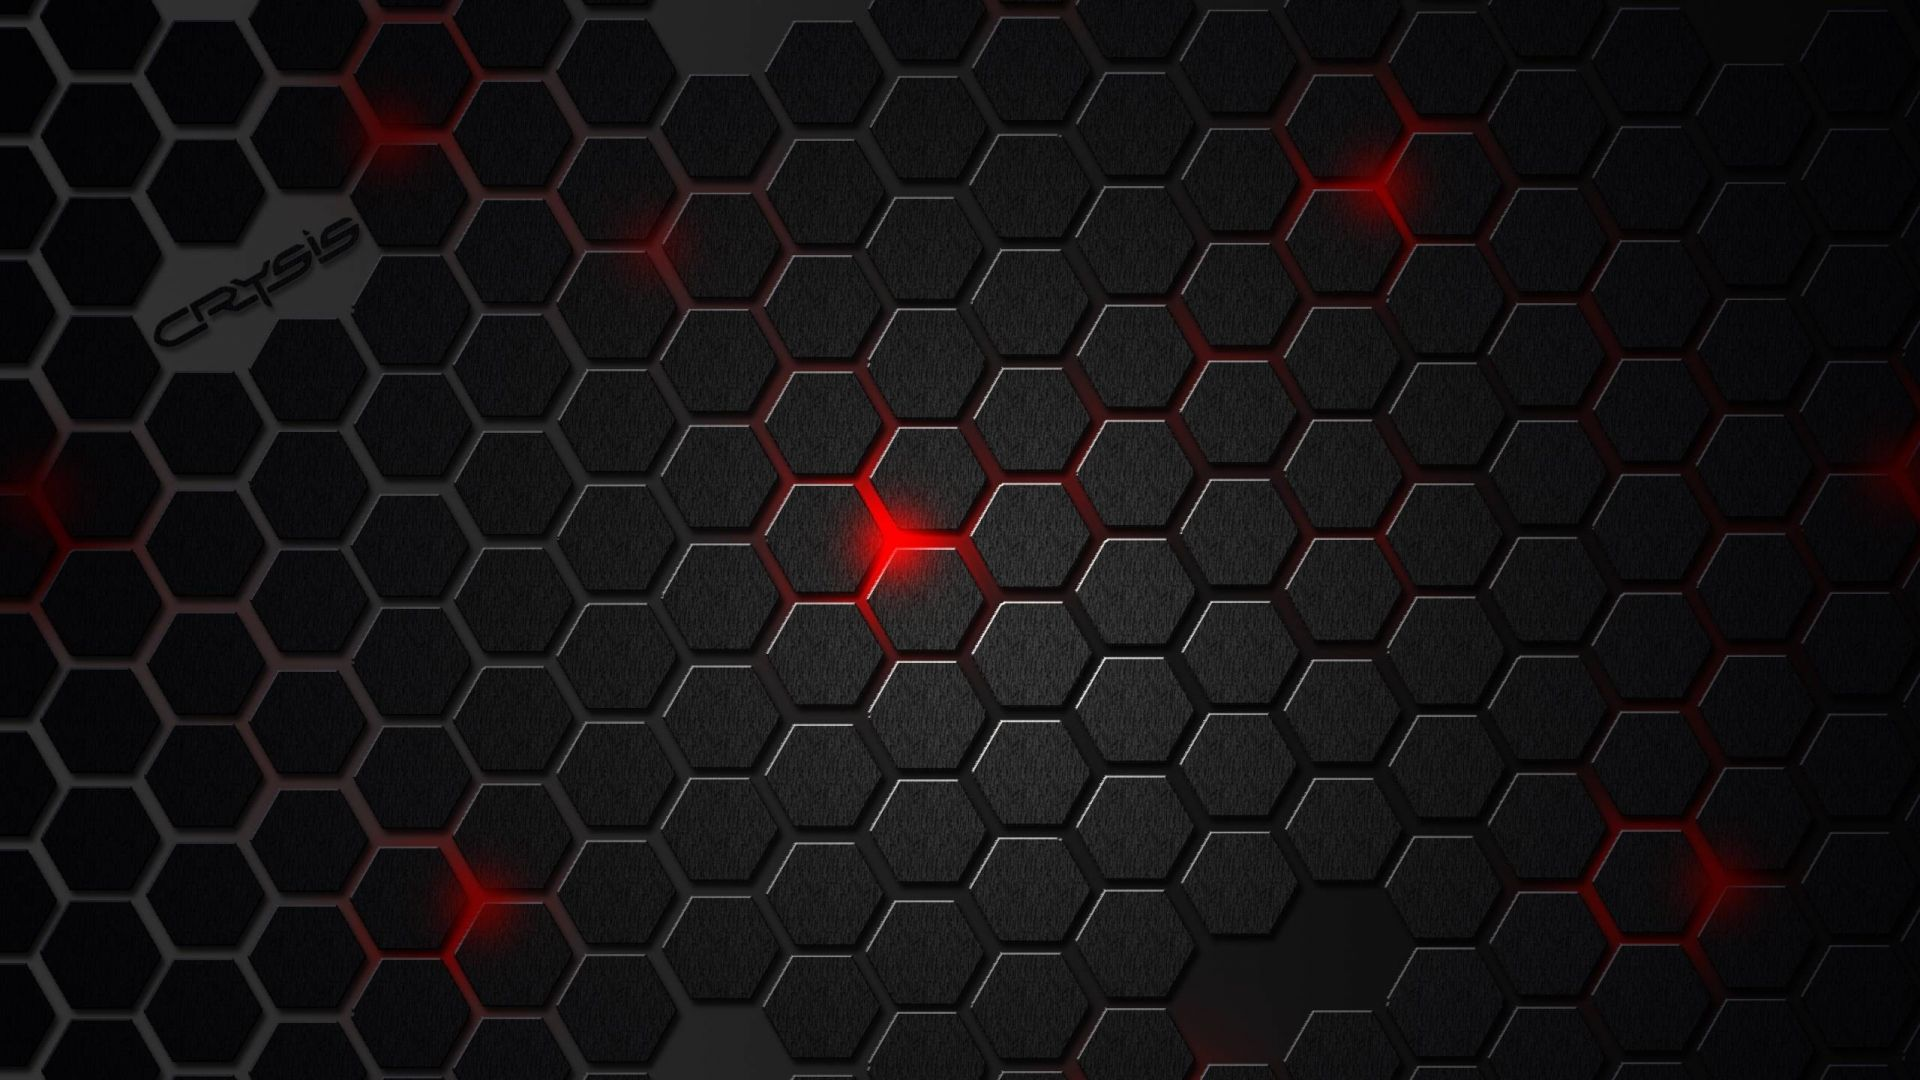 Black And Red download nice wallpaper